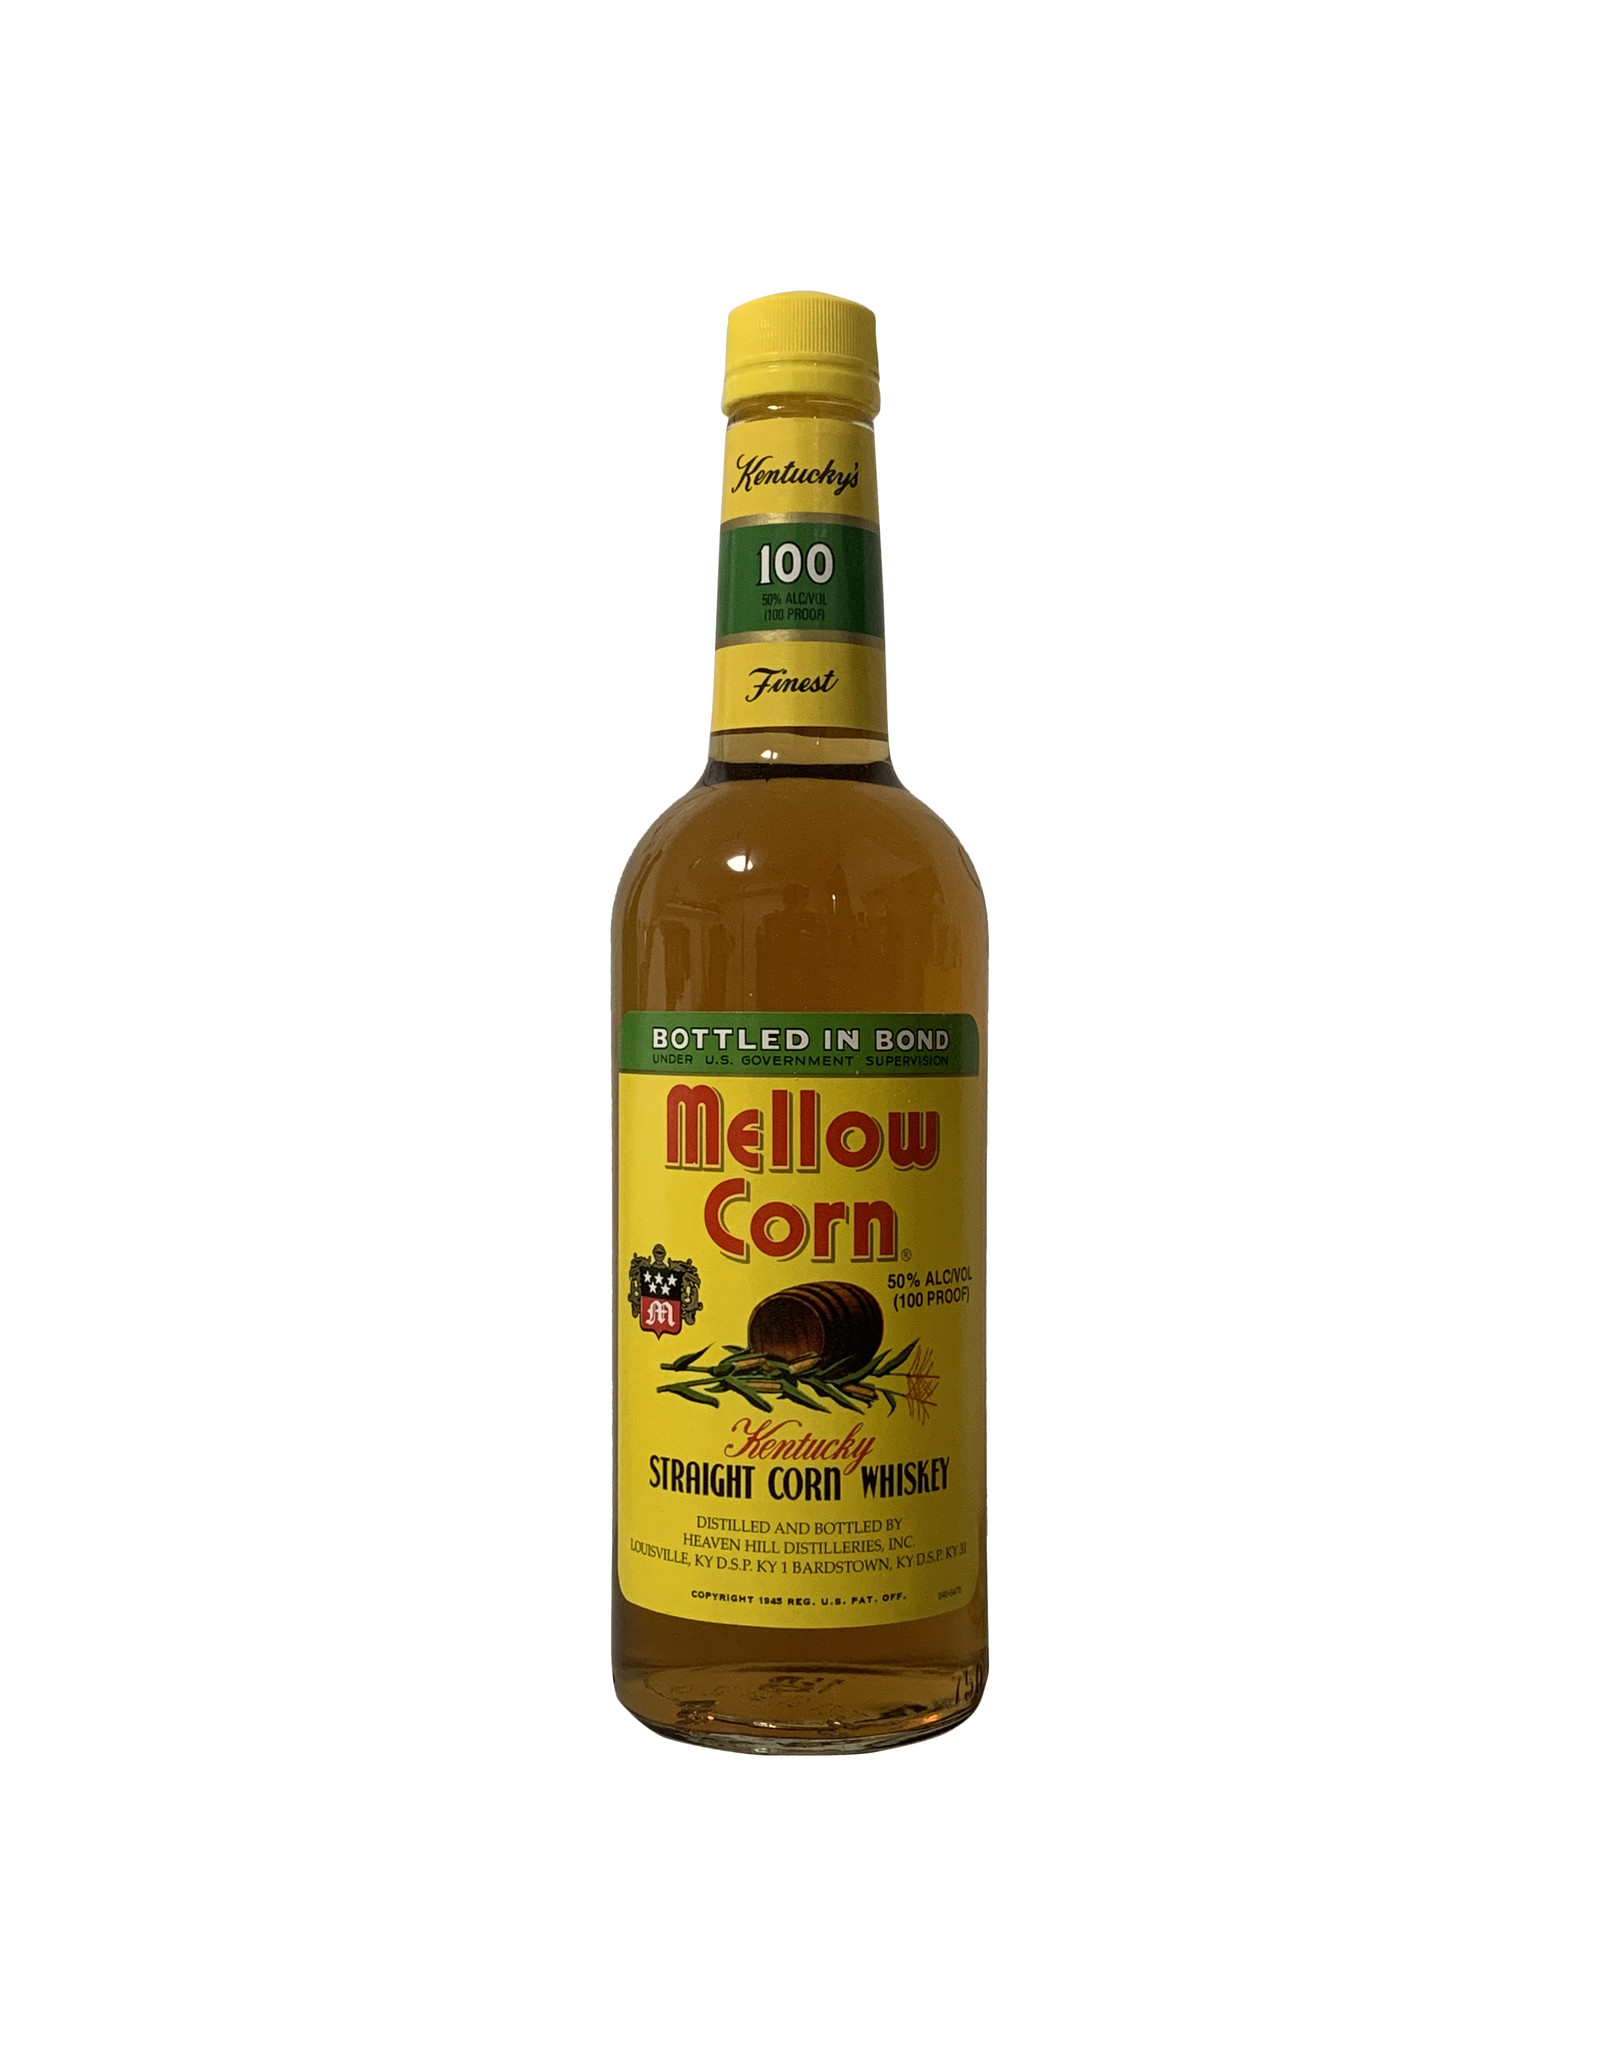 Mellow Corn Mellow Corn Kentucky Straight Corn Whiskey 100 Proof, Kentucky (750mL)